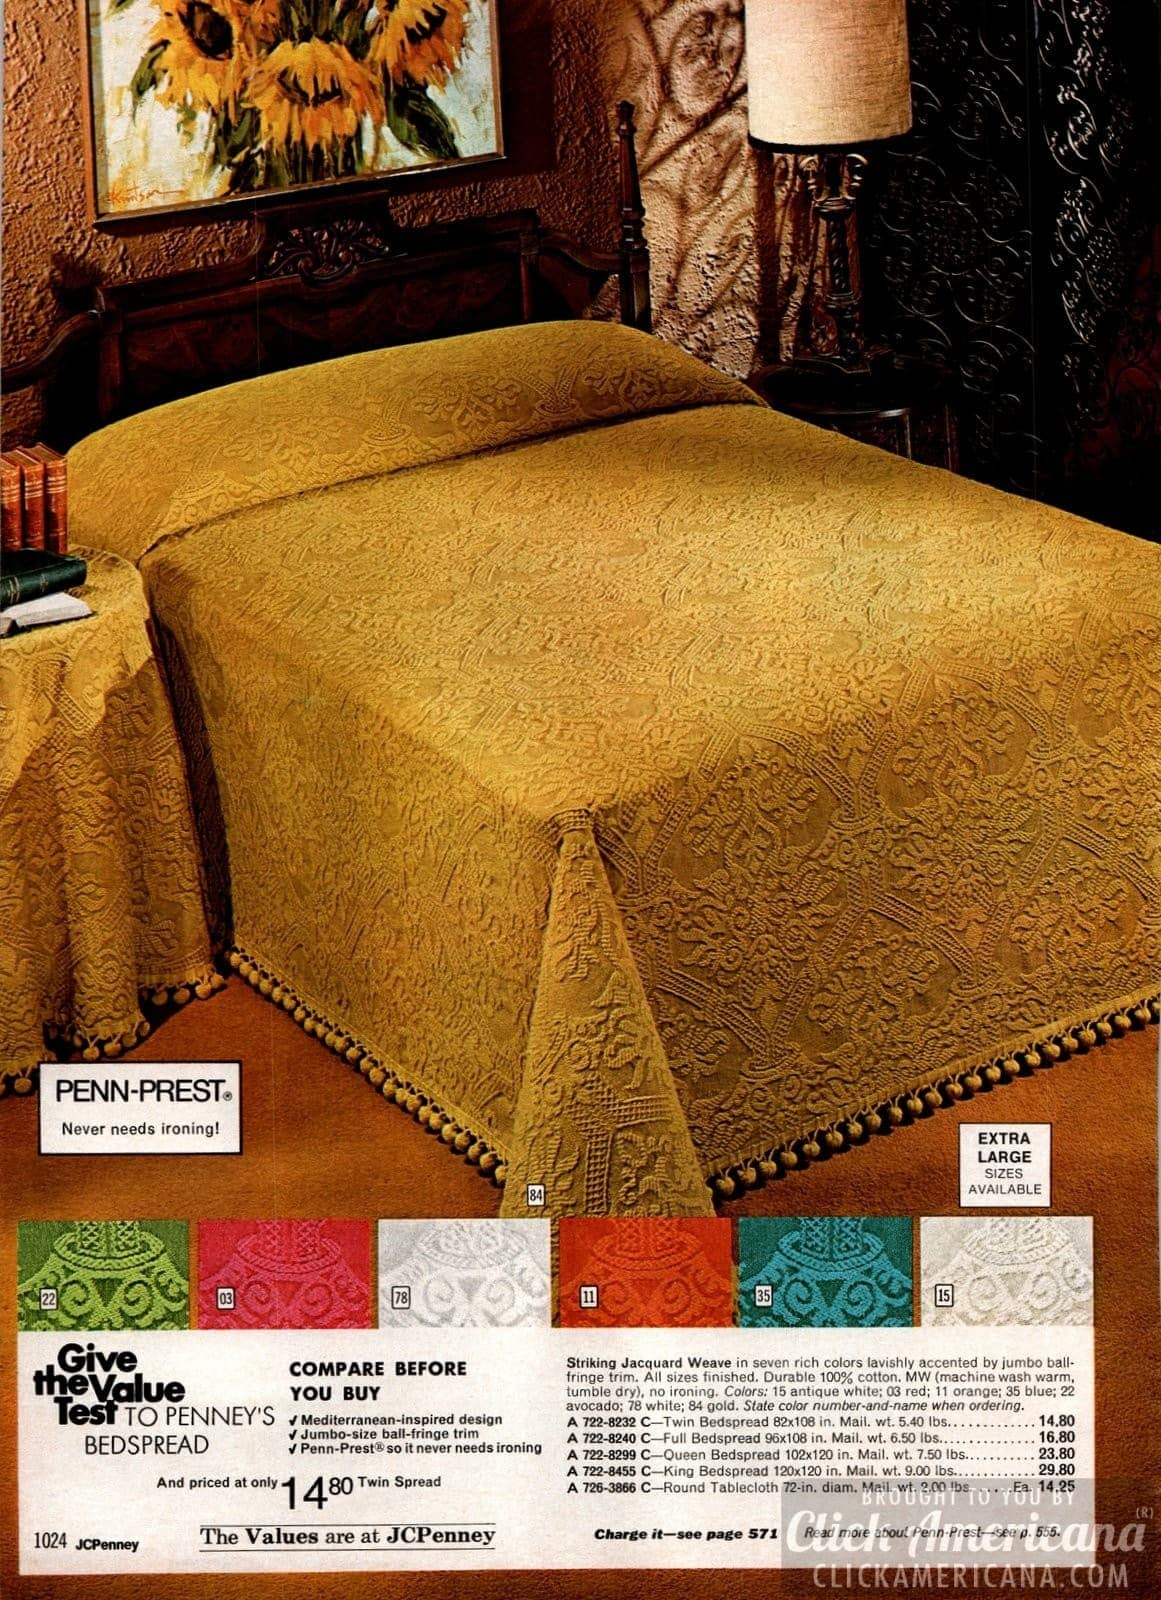 Retro jacquard weave textured bedspreads in 6 colors